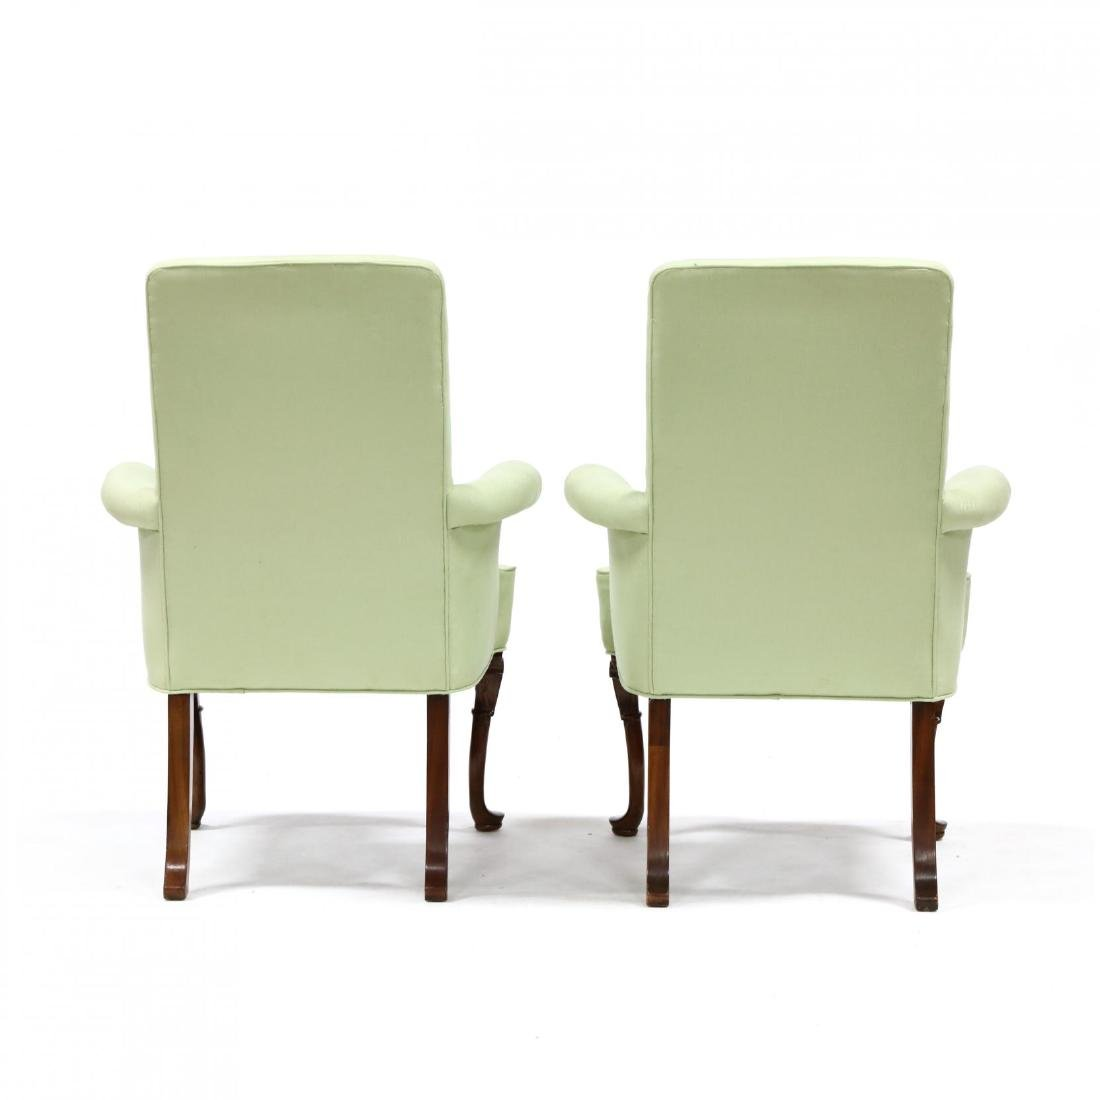 Pair of Queen Anne Style Lolling Chairs - 3